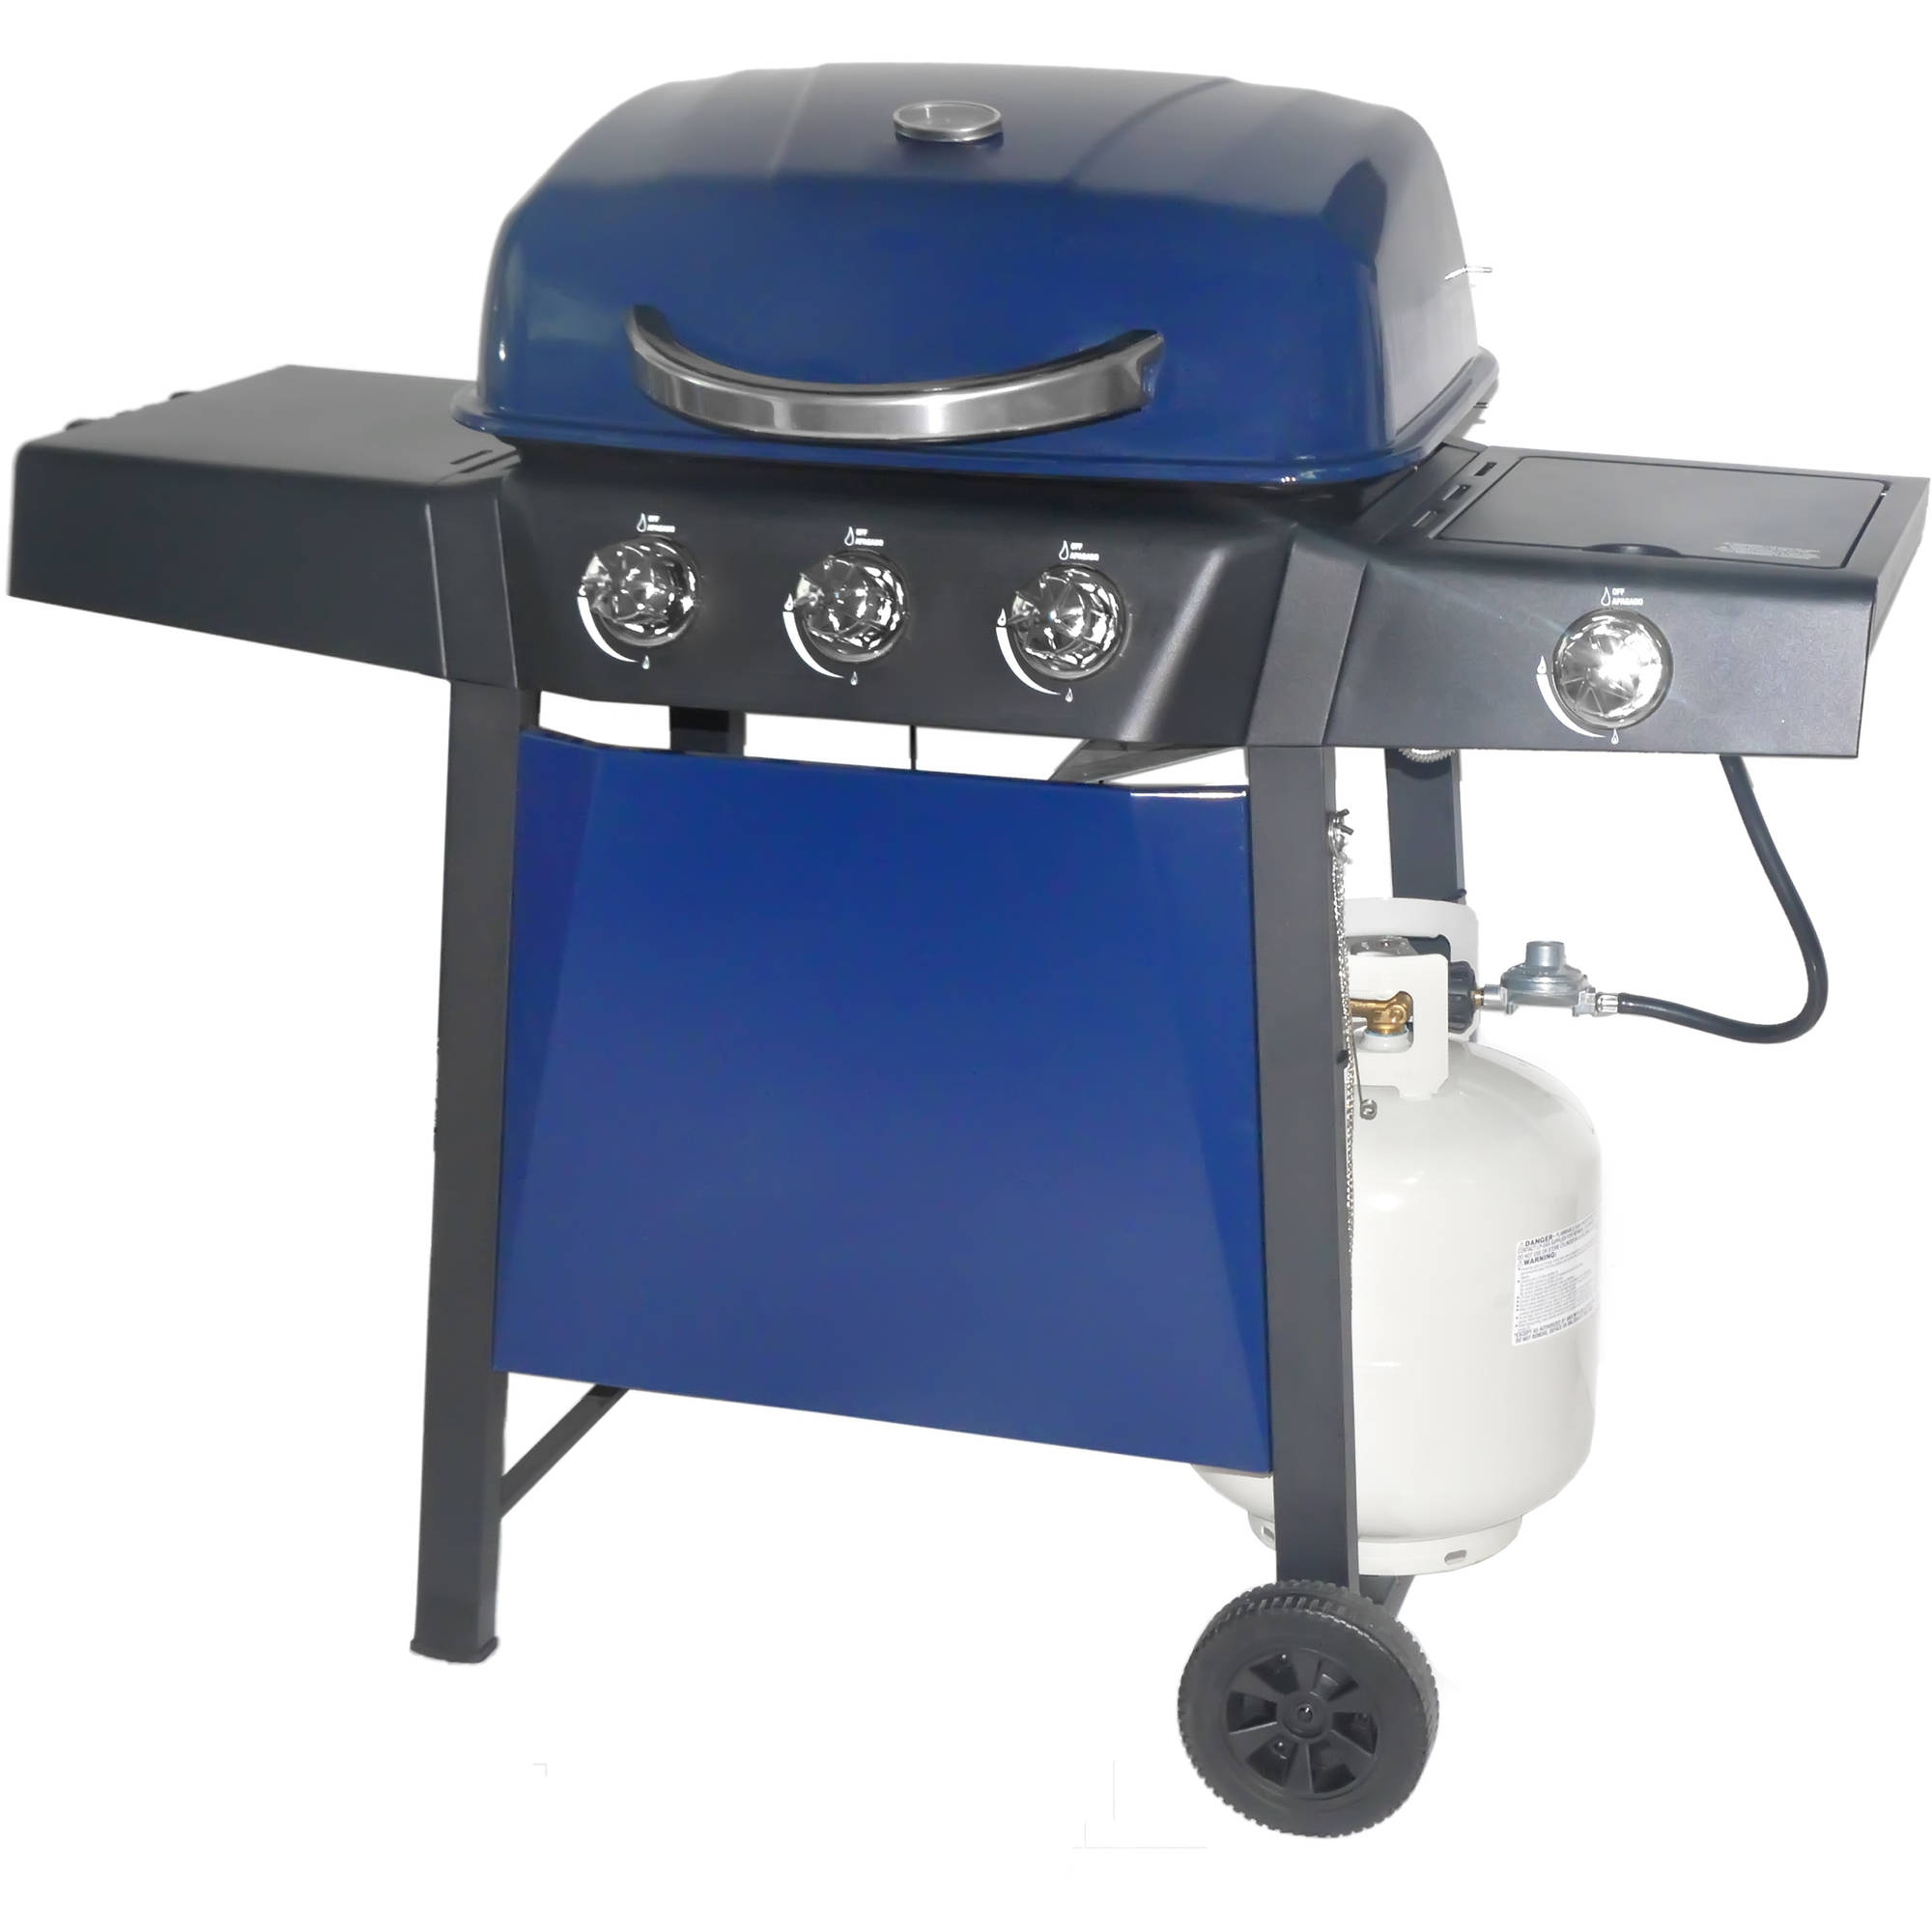 RevoAce 3-Burner LP Gas Grill with Side Burner, Blue Sapphire